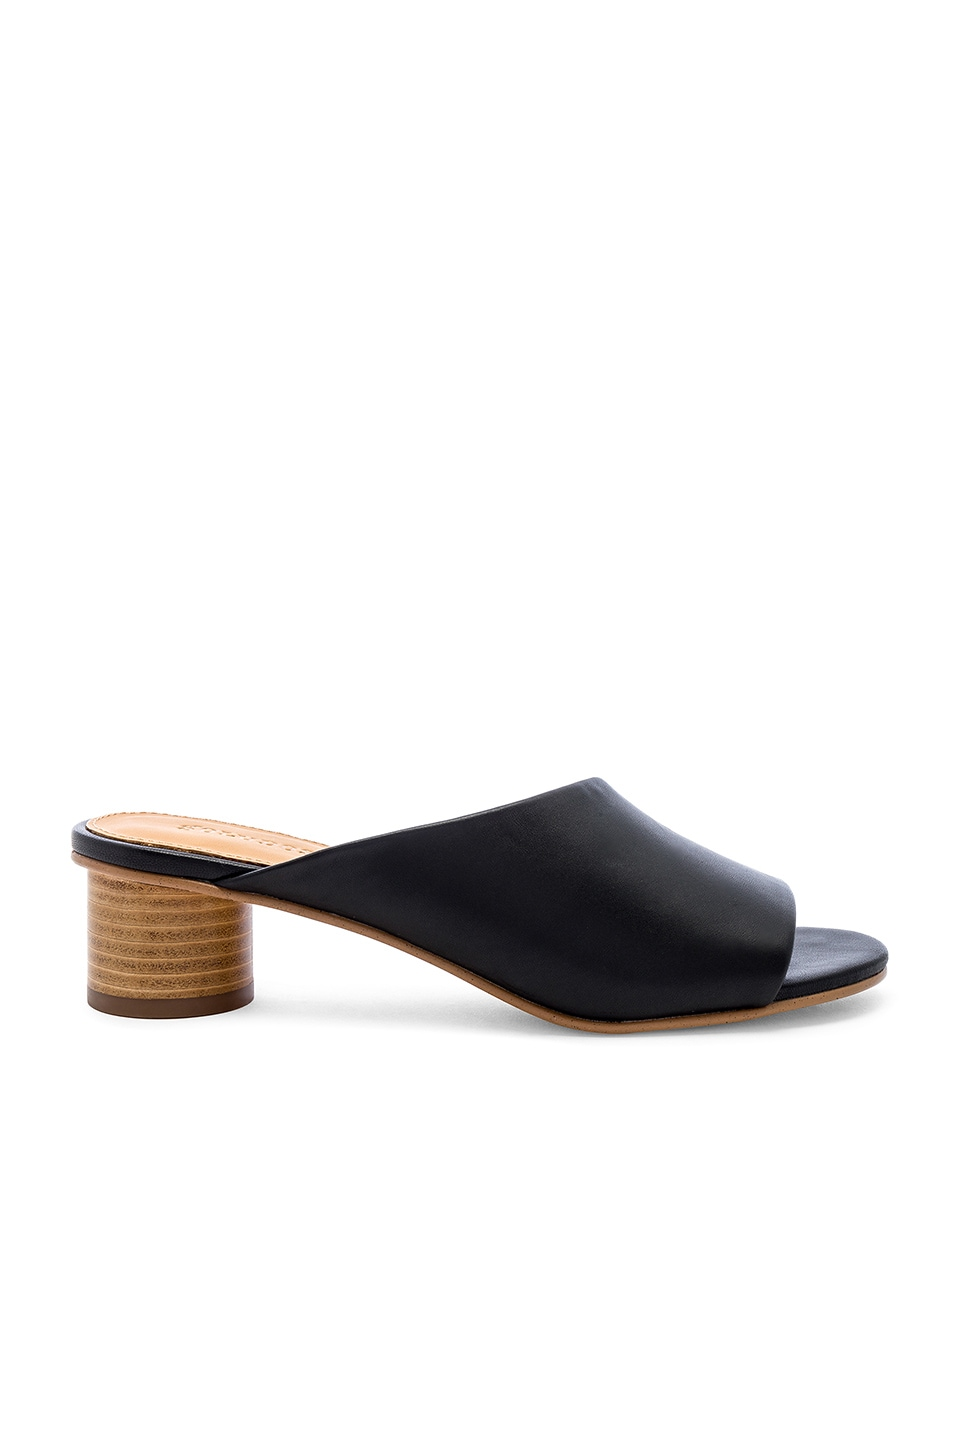 Soludos Milan Mule in Black